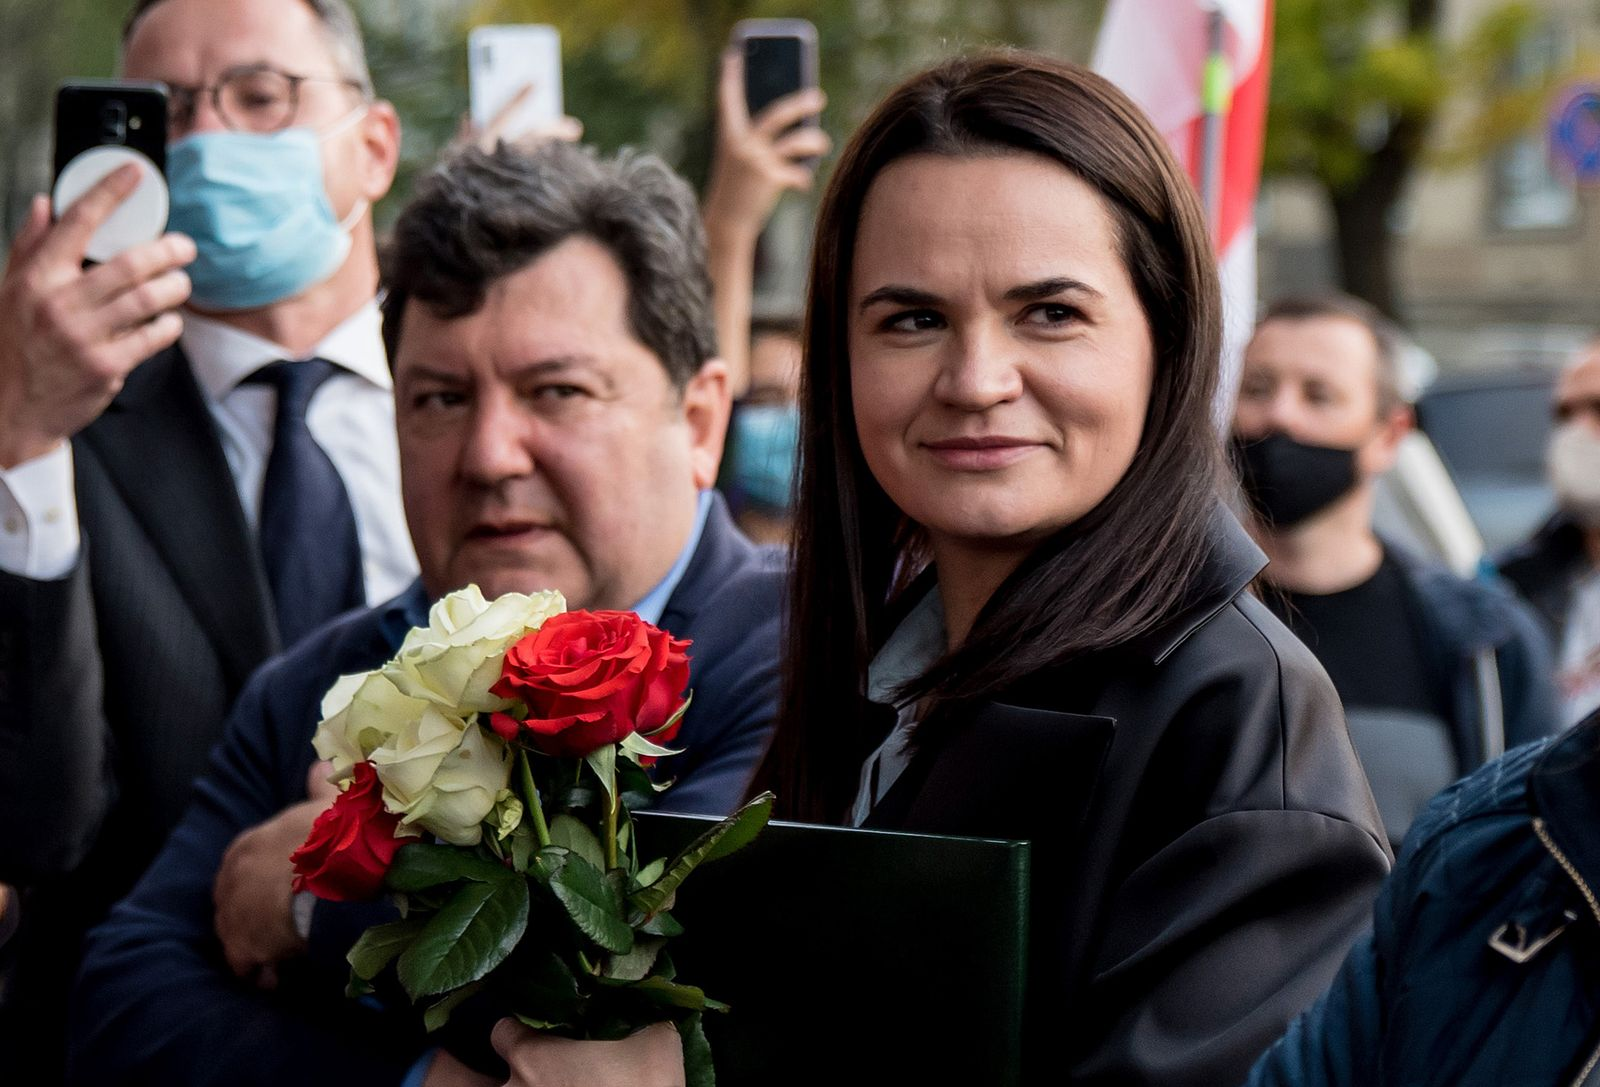 Exiled Belarus Opposition Leader Tikhanovskaya Pays Tribute To 'Freedom Fighters' In Day Of Events In Lithuania